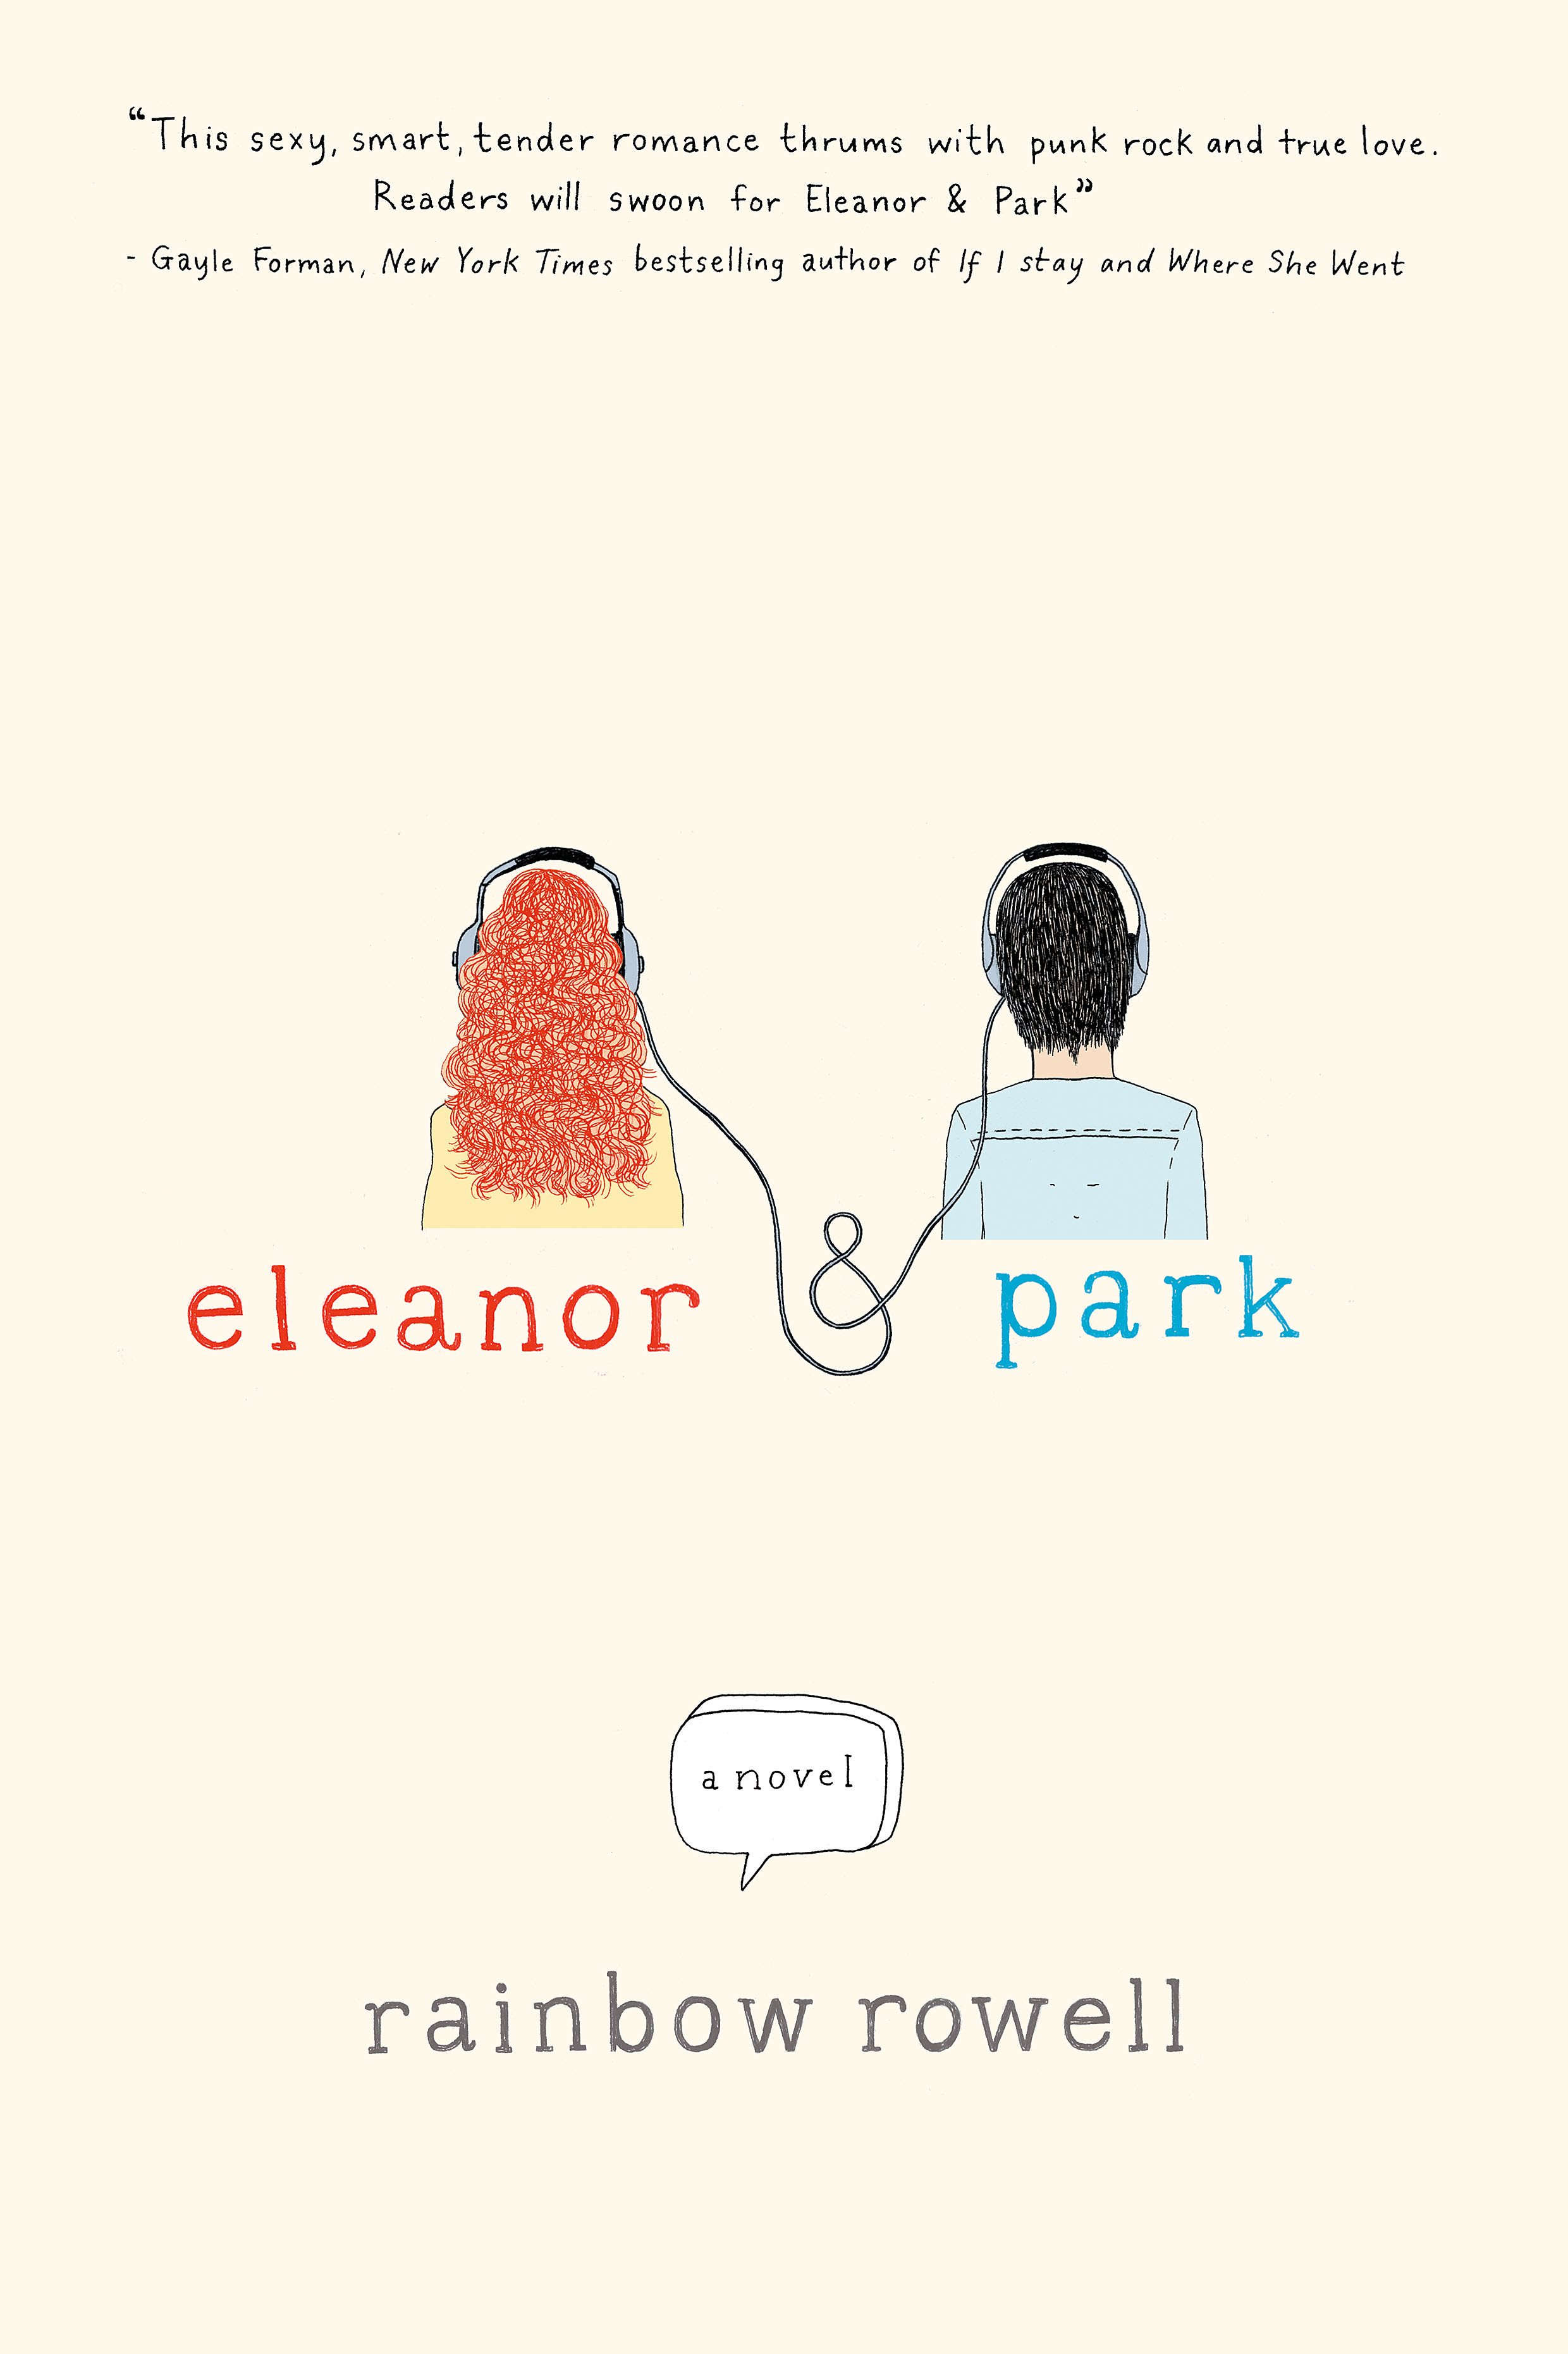 http://uglynikki.files.wordpress.com/2013/07/eleanor-and-park2.jpg